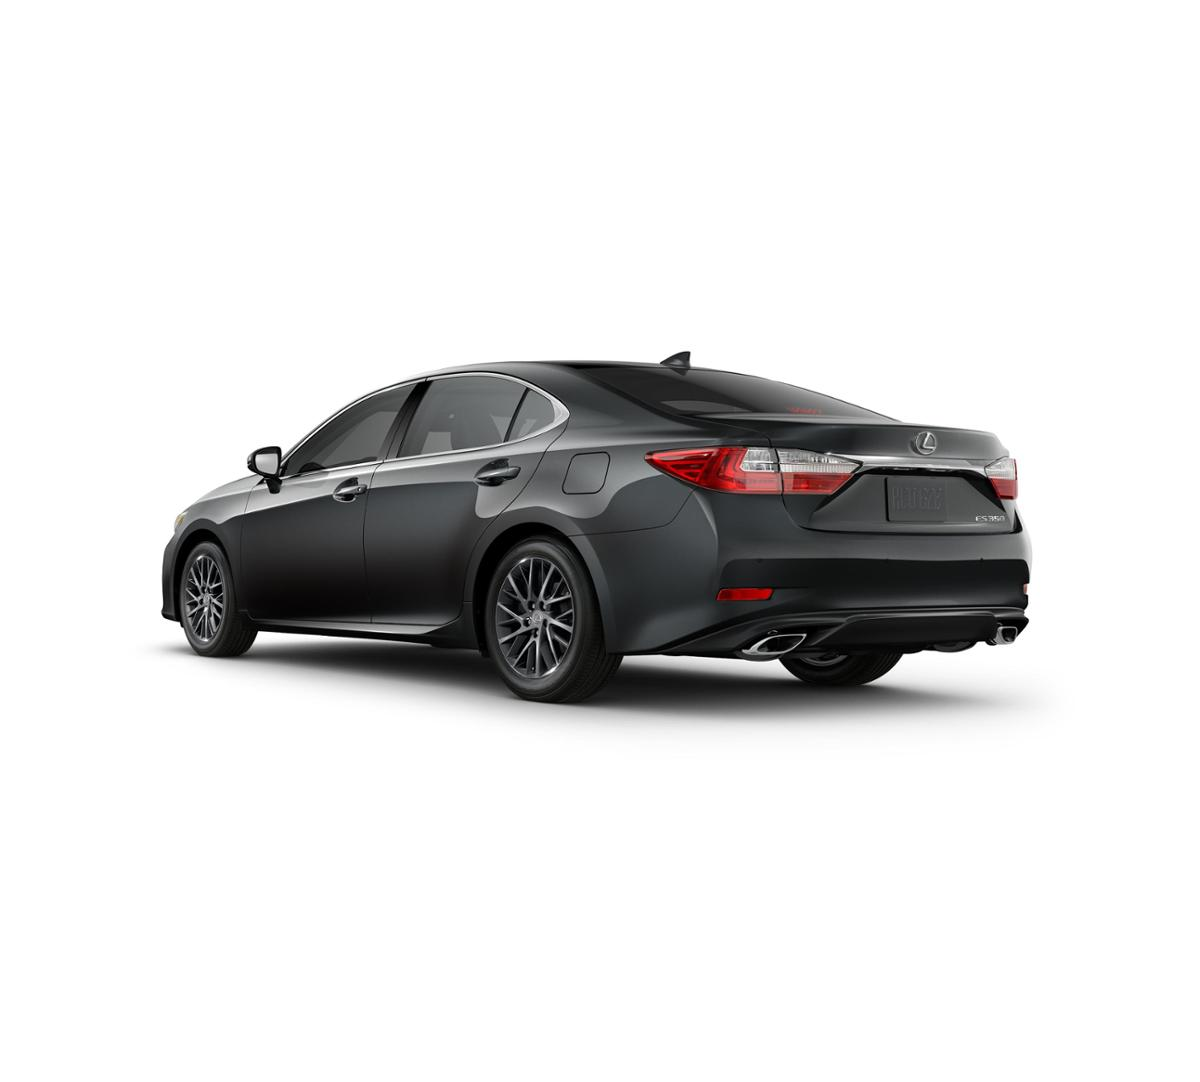 Westside Lexus Is A Houston Lexus Dealer And A New Car And